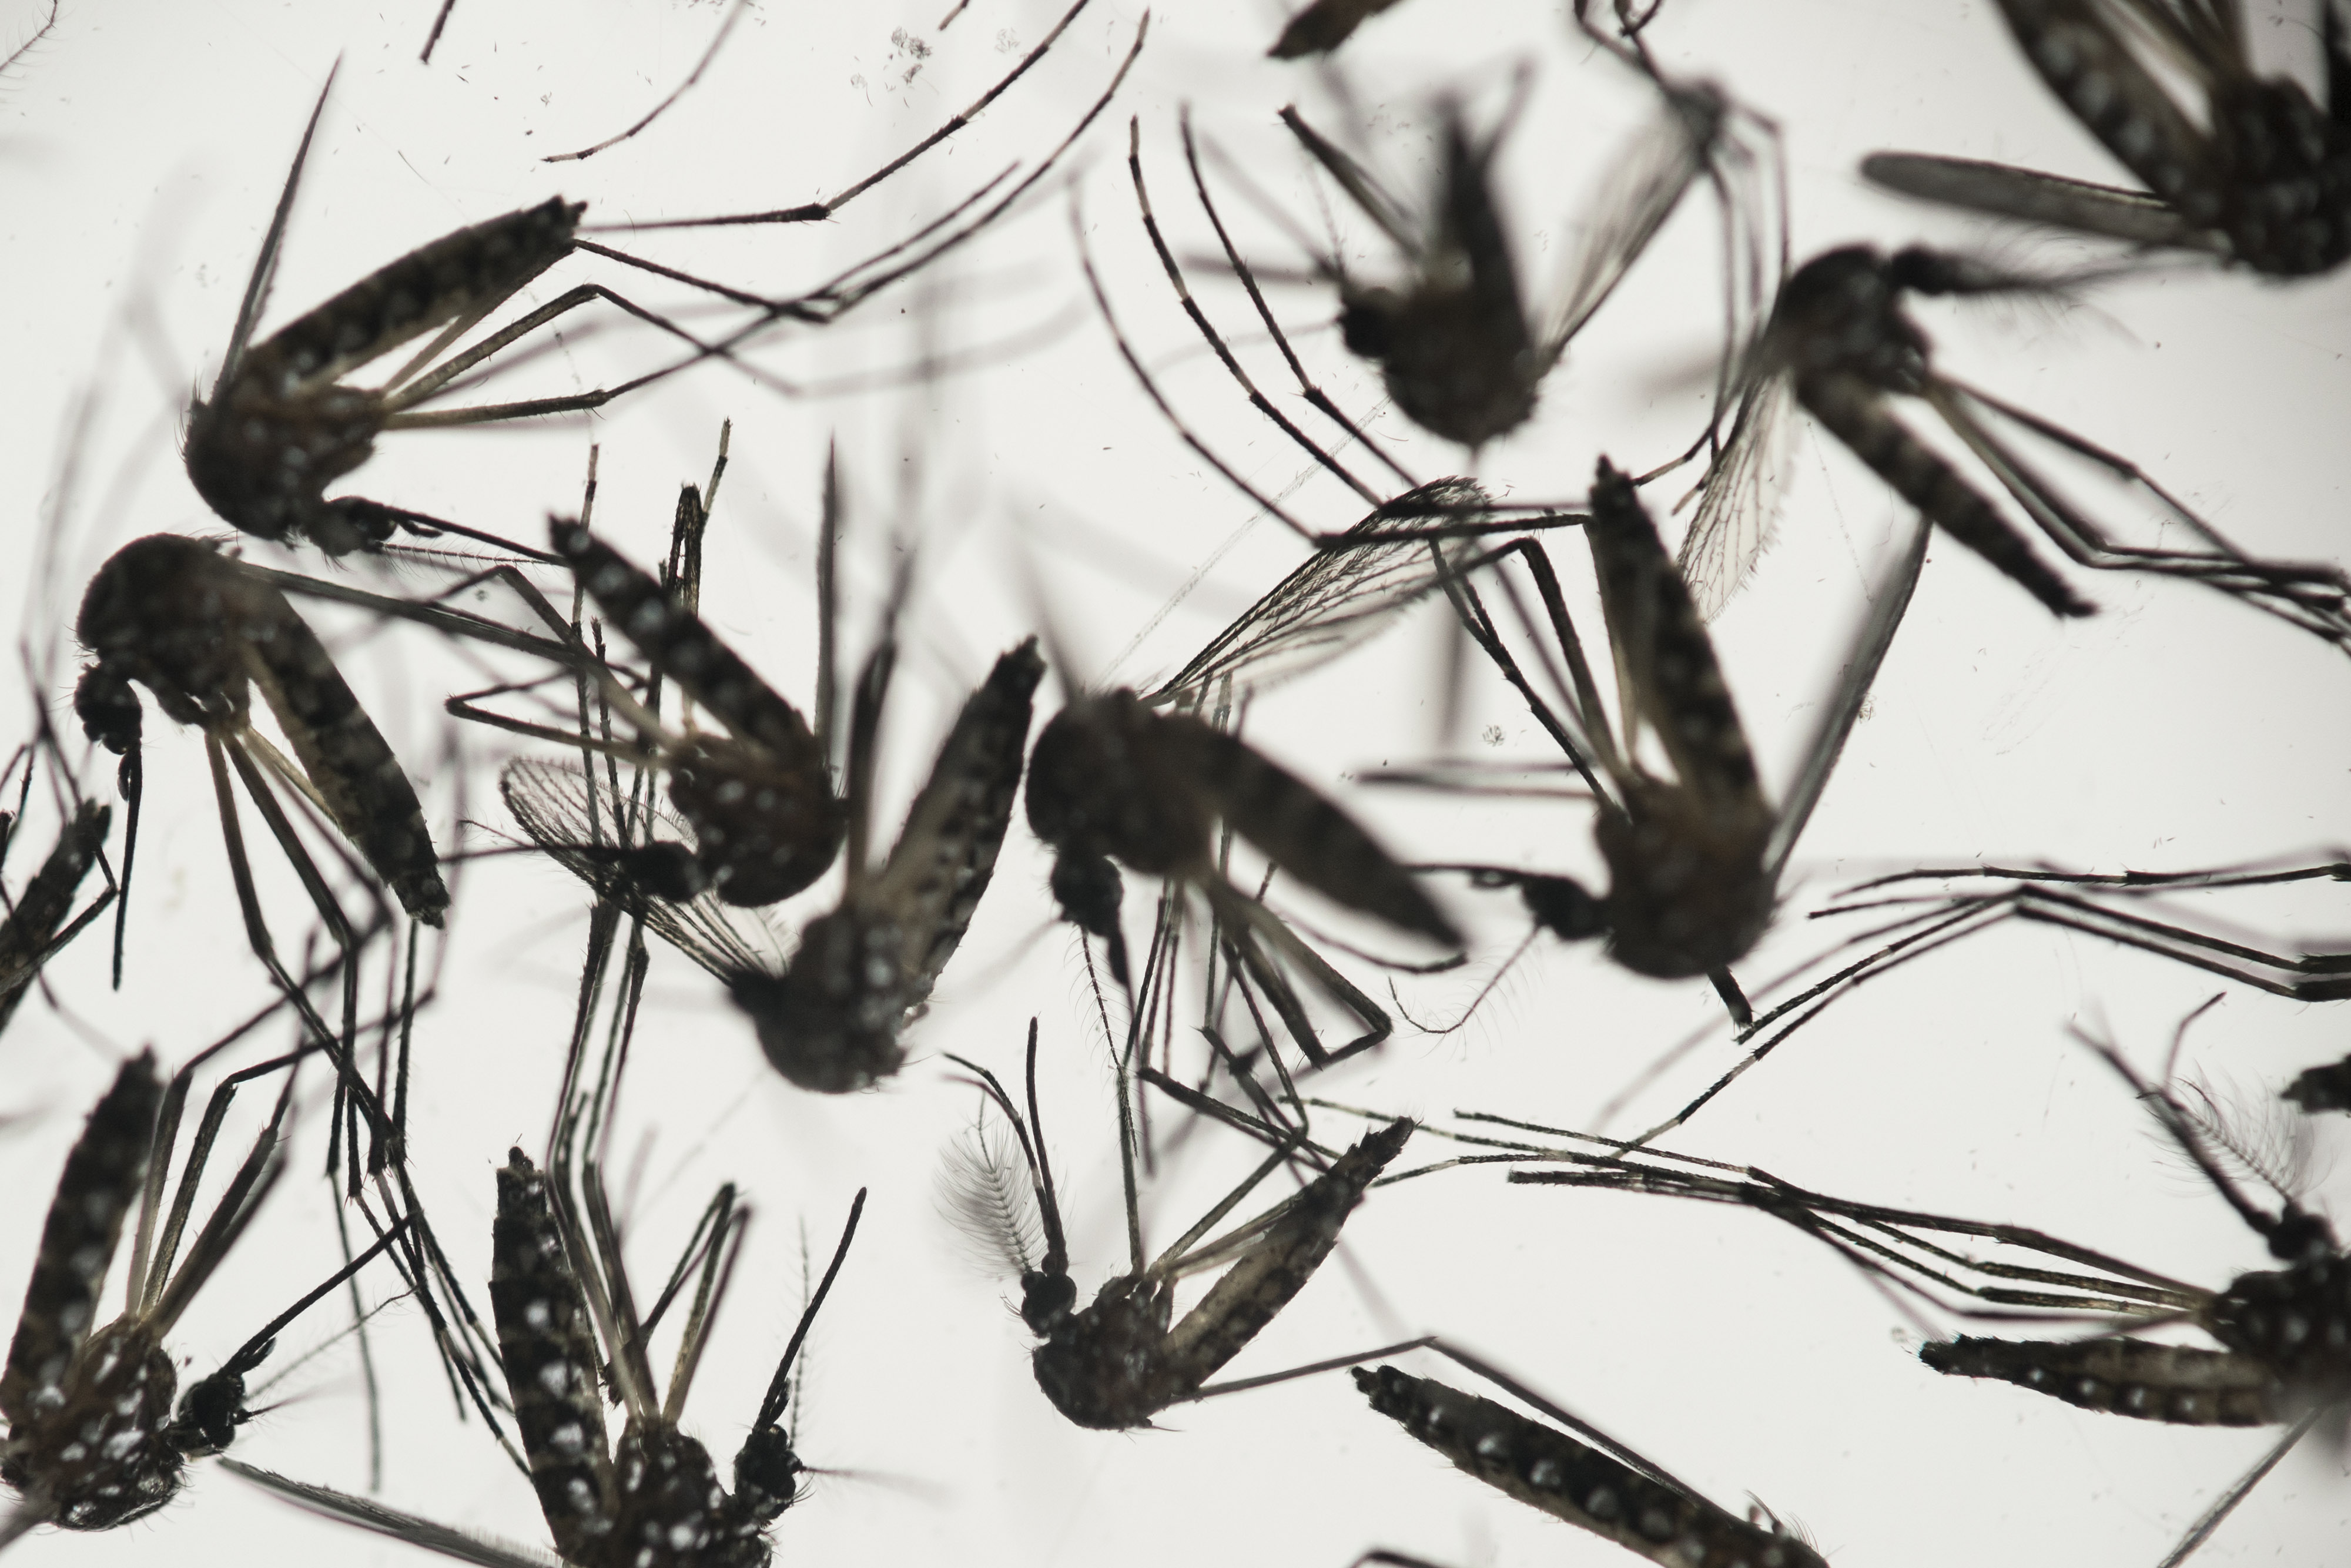 As summer nears, officials warn to protect against Zika virus